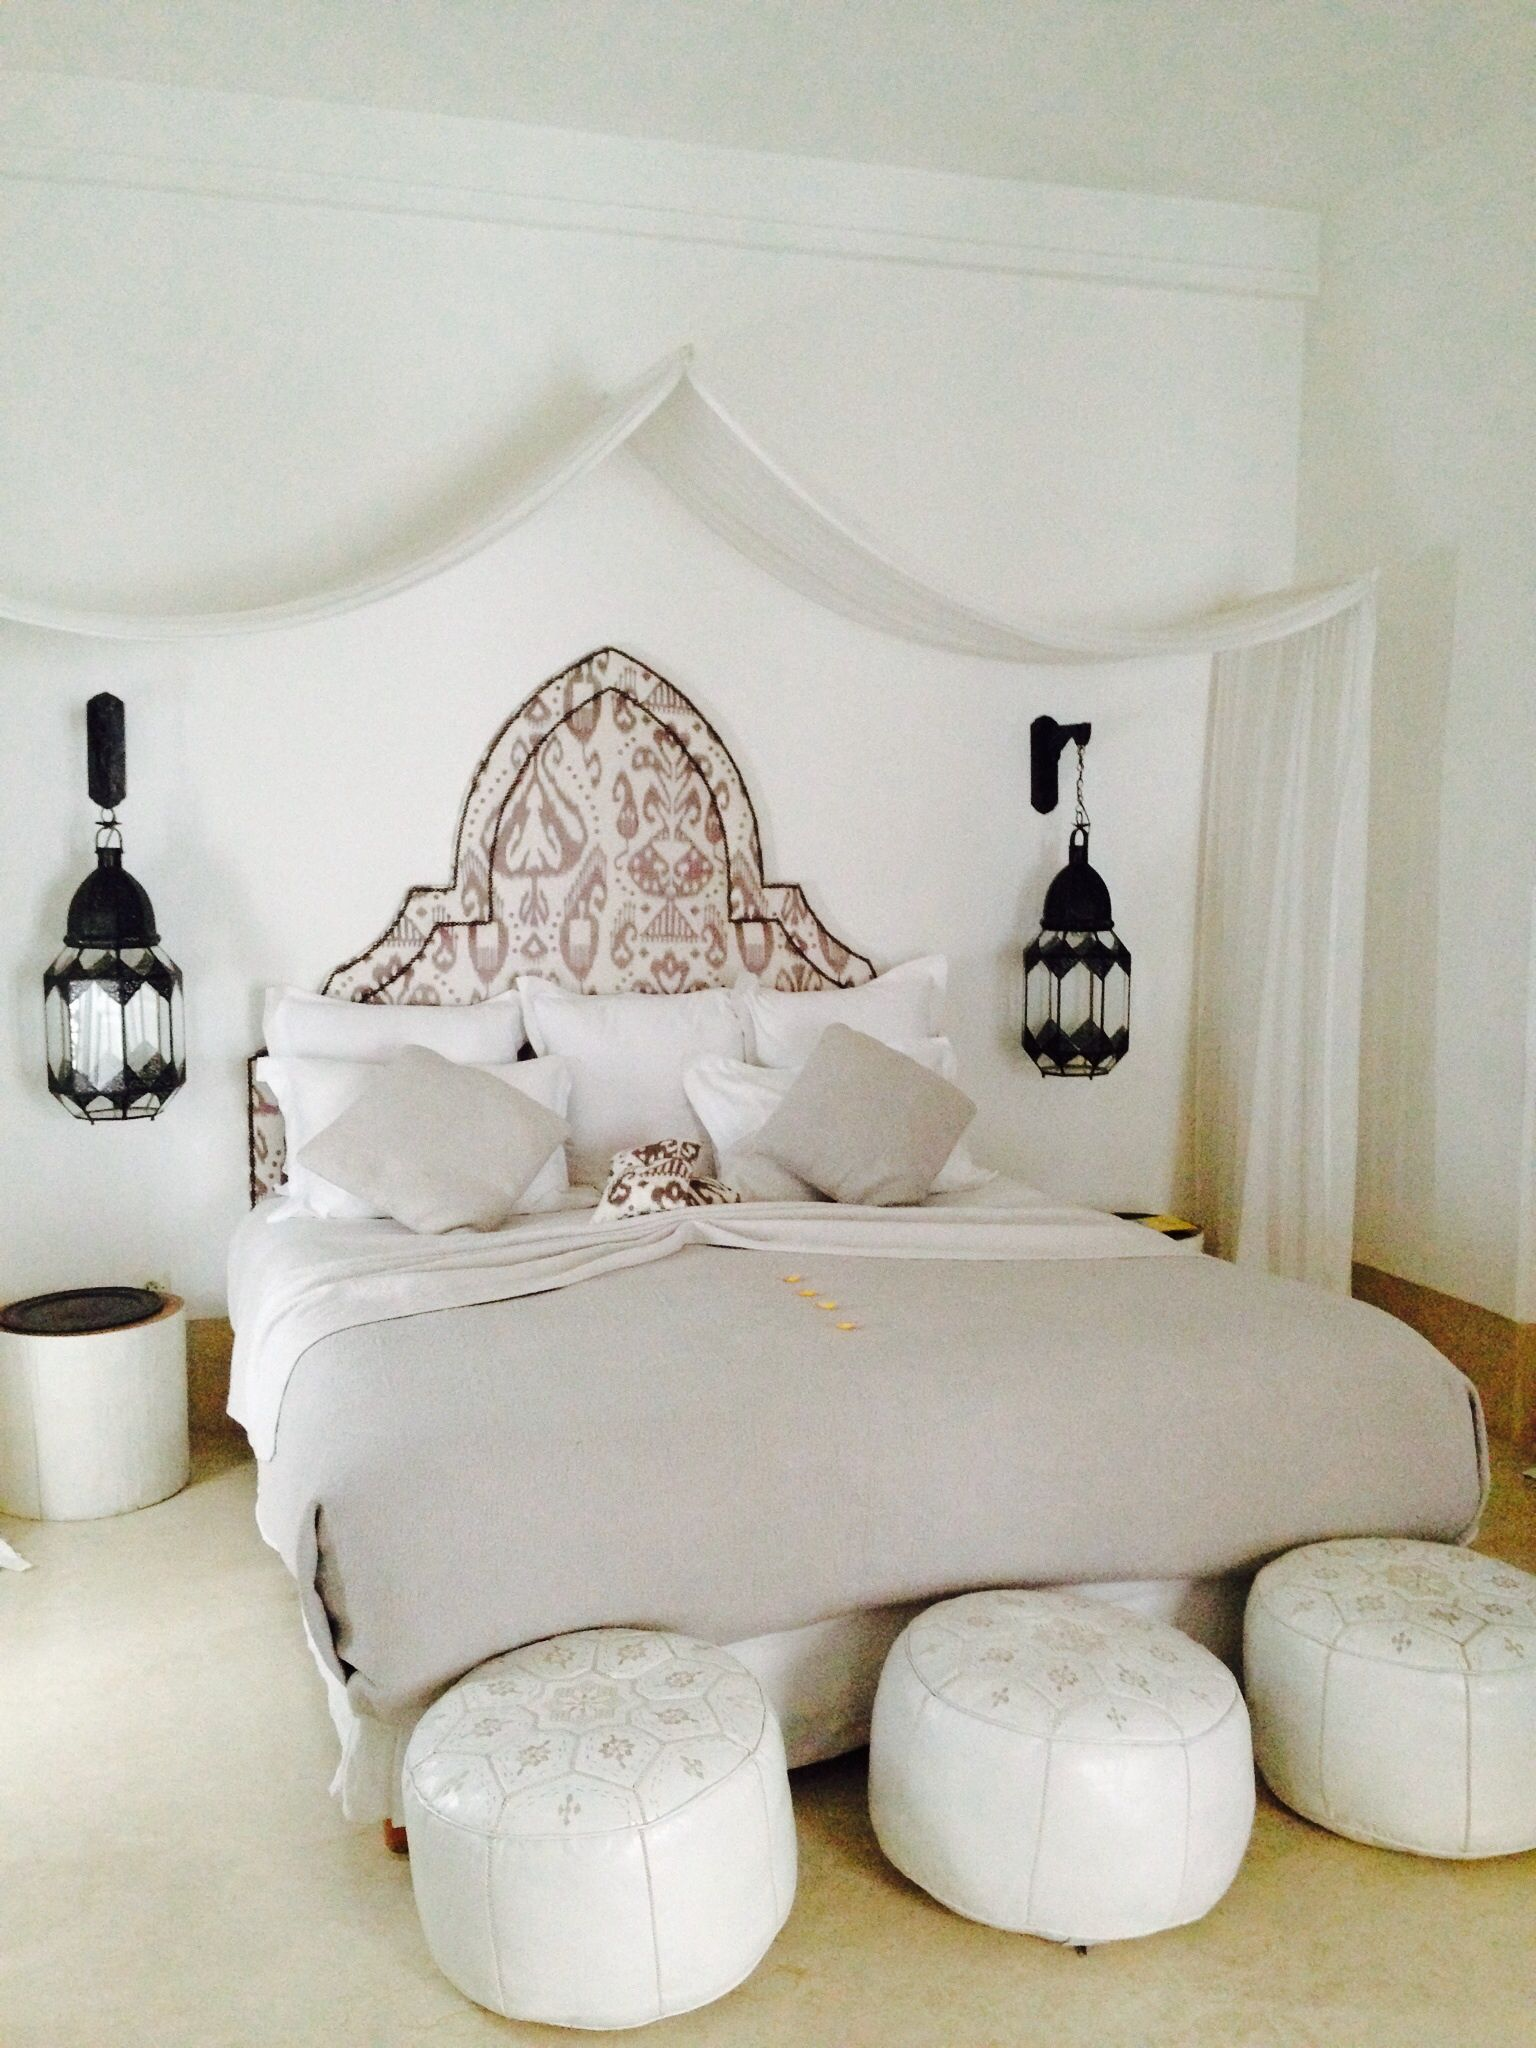 Suite Riad Snan13 in Marrakesch | Dream Home | Pinterest ...